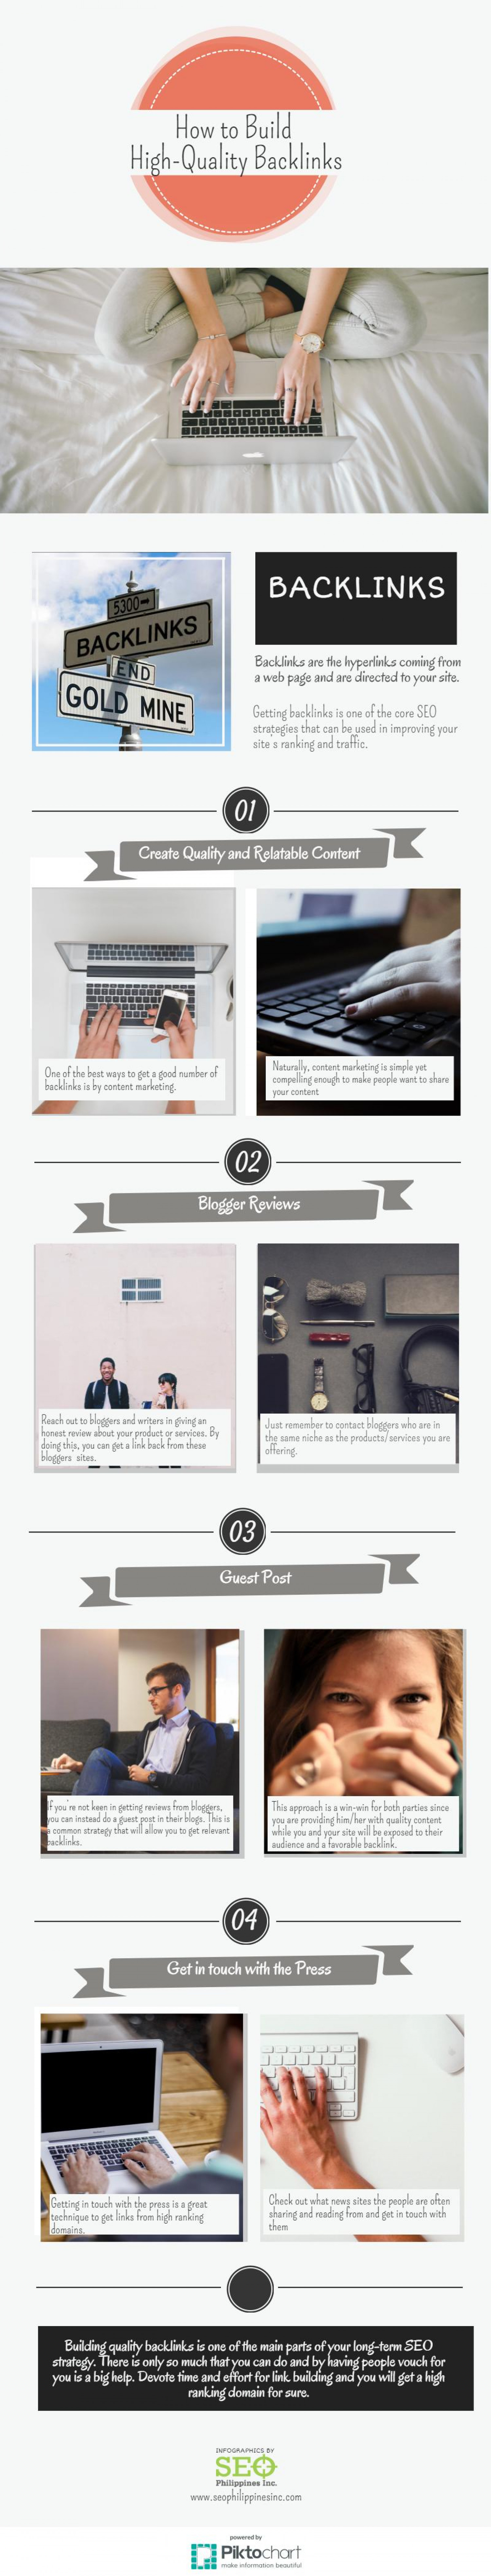 How to build High-Quality Backlinks Infographic